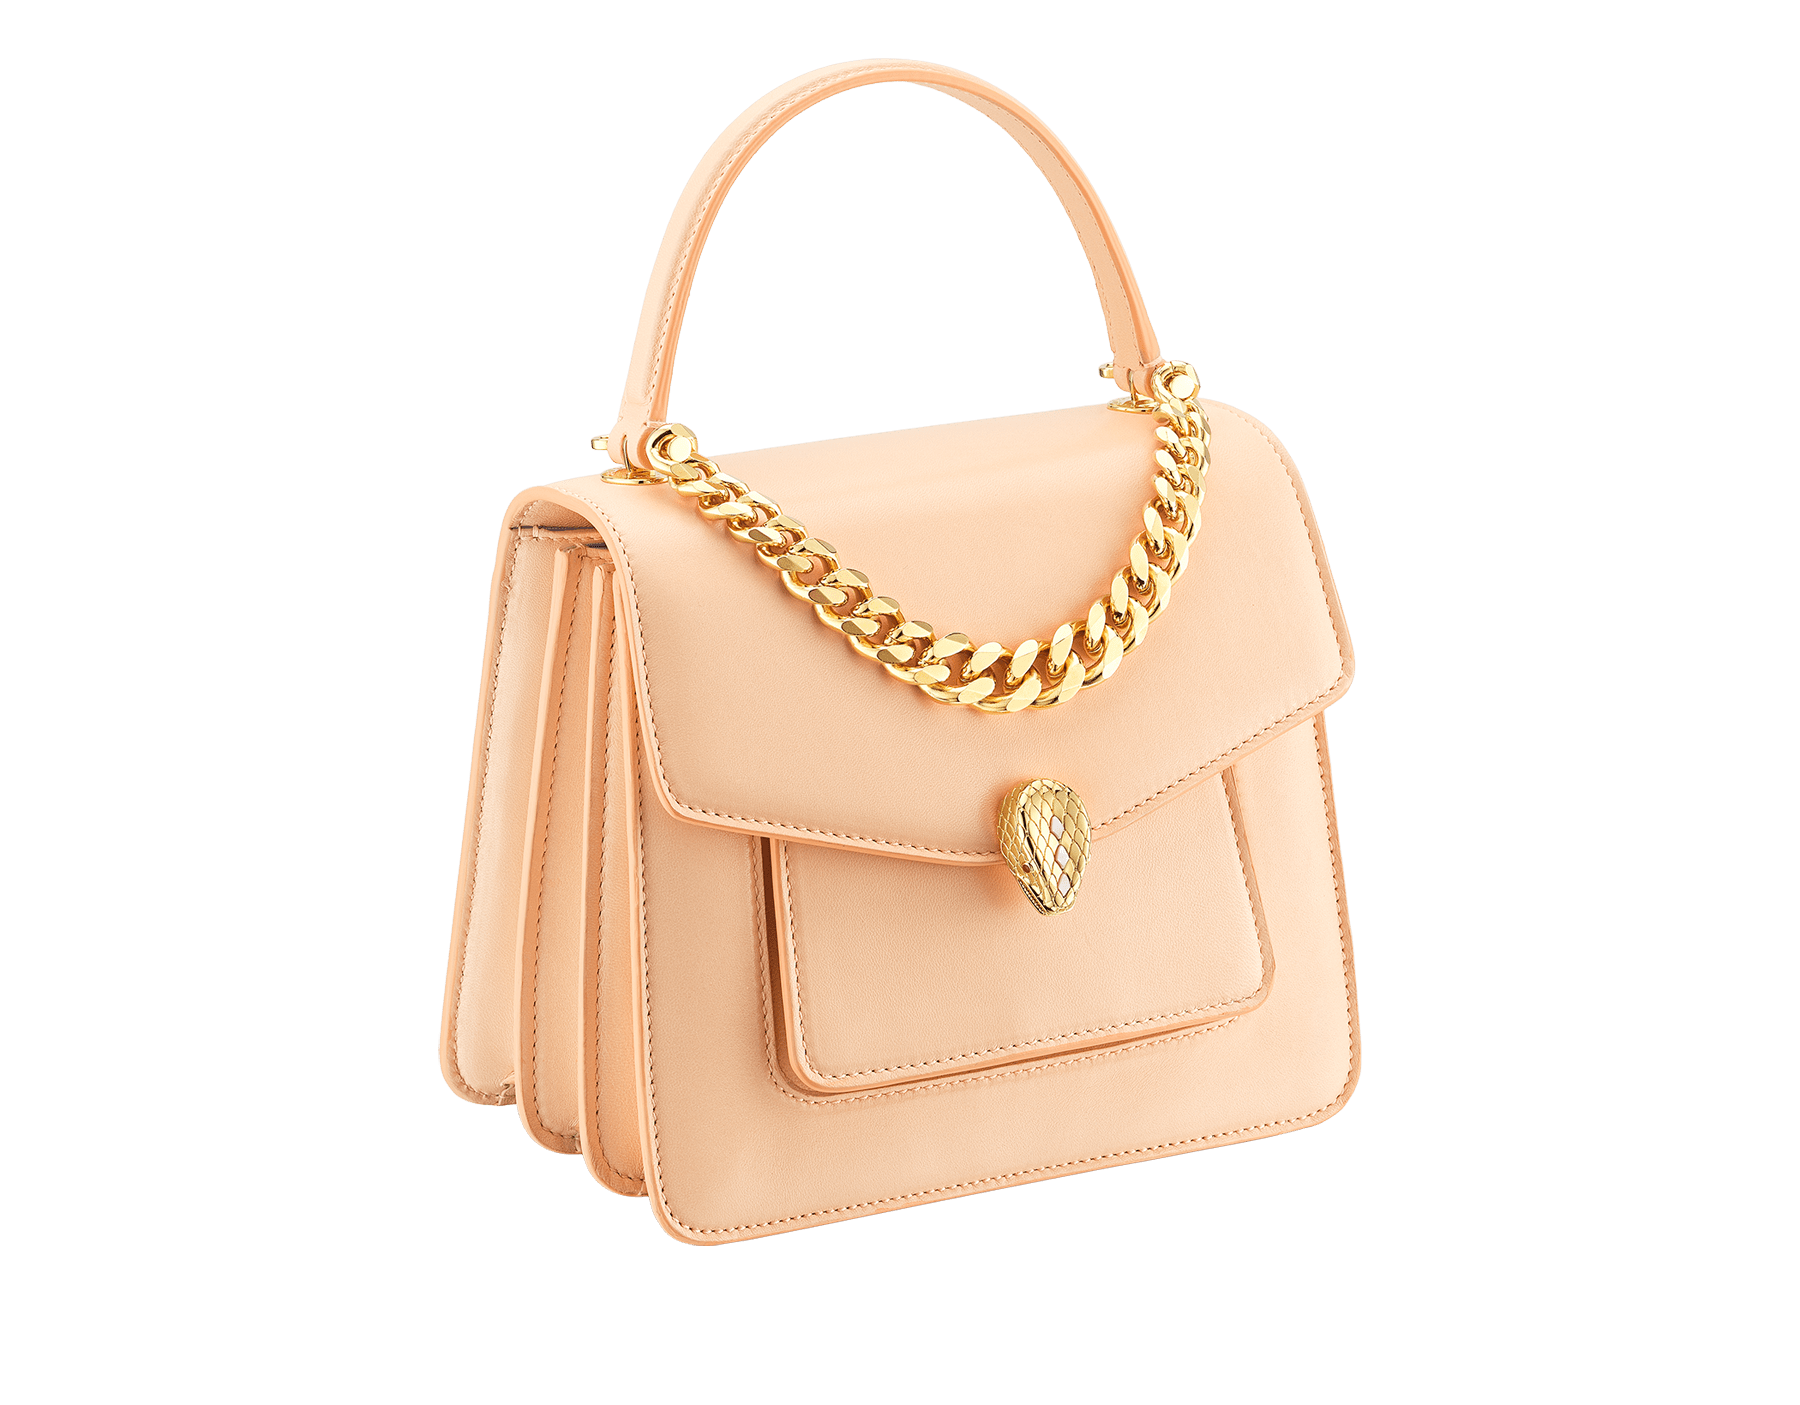 """""""Serpenti Forever"""" small maxi chain top handle bag in peach nappa leather, with Lavender Amethyst lilac nappa leather inner lining. New Serpenti head closure in gold-plated brass, finished with small pink mother-of-pearl scales in the middle and red enamel eyes. 1133-MCN image 2"""